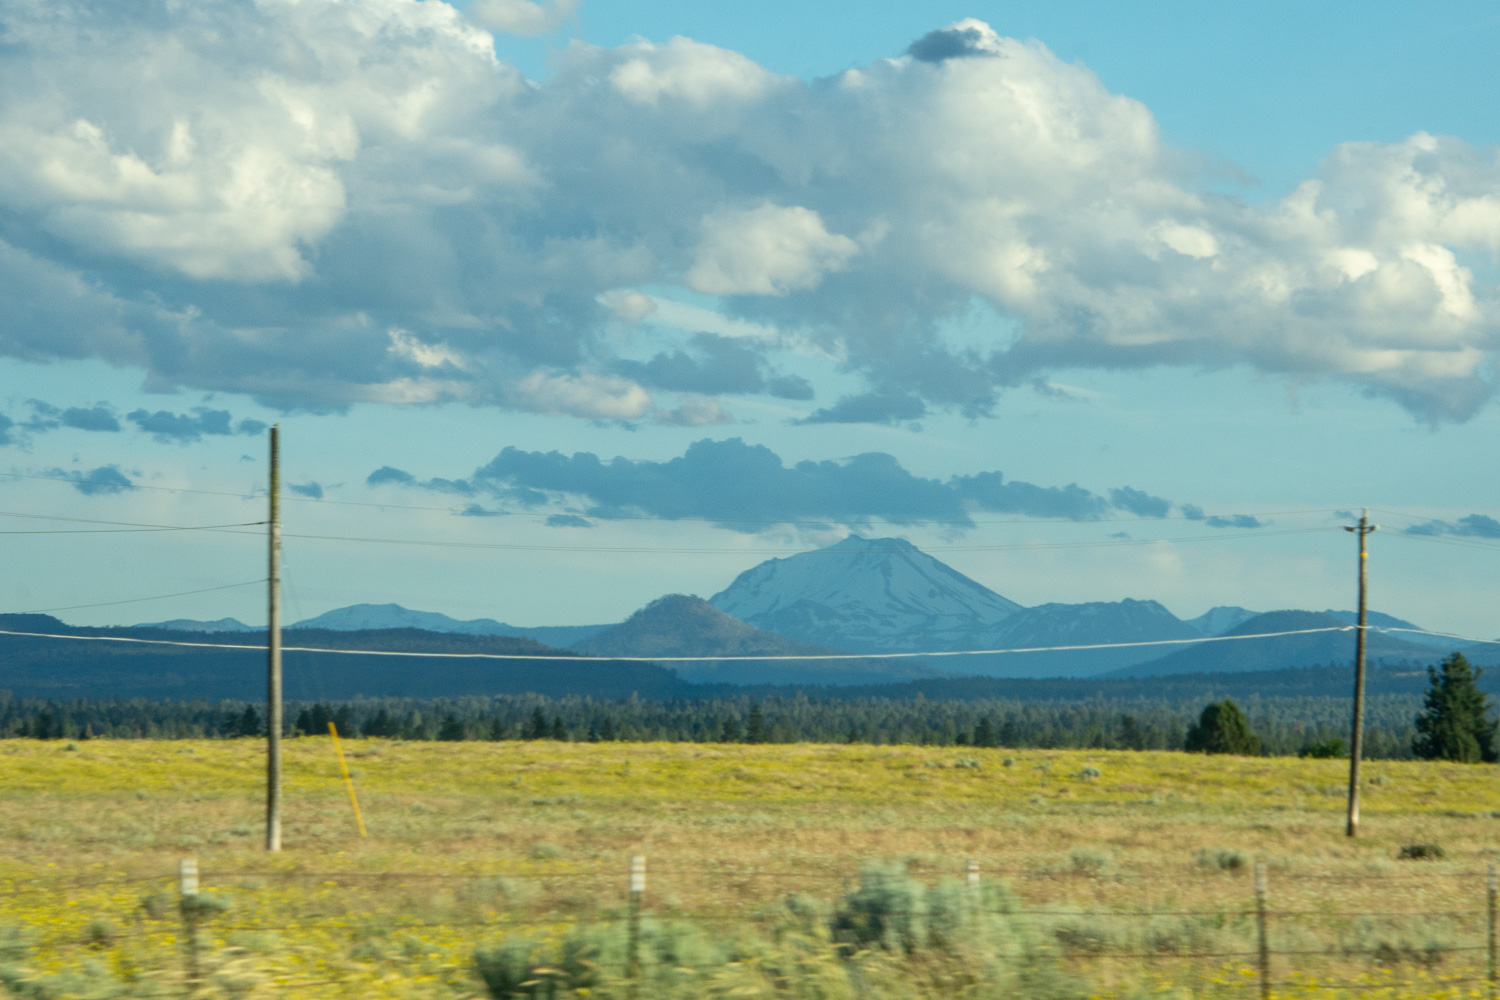 Mt. Lassen from the road.